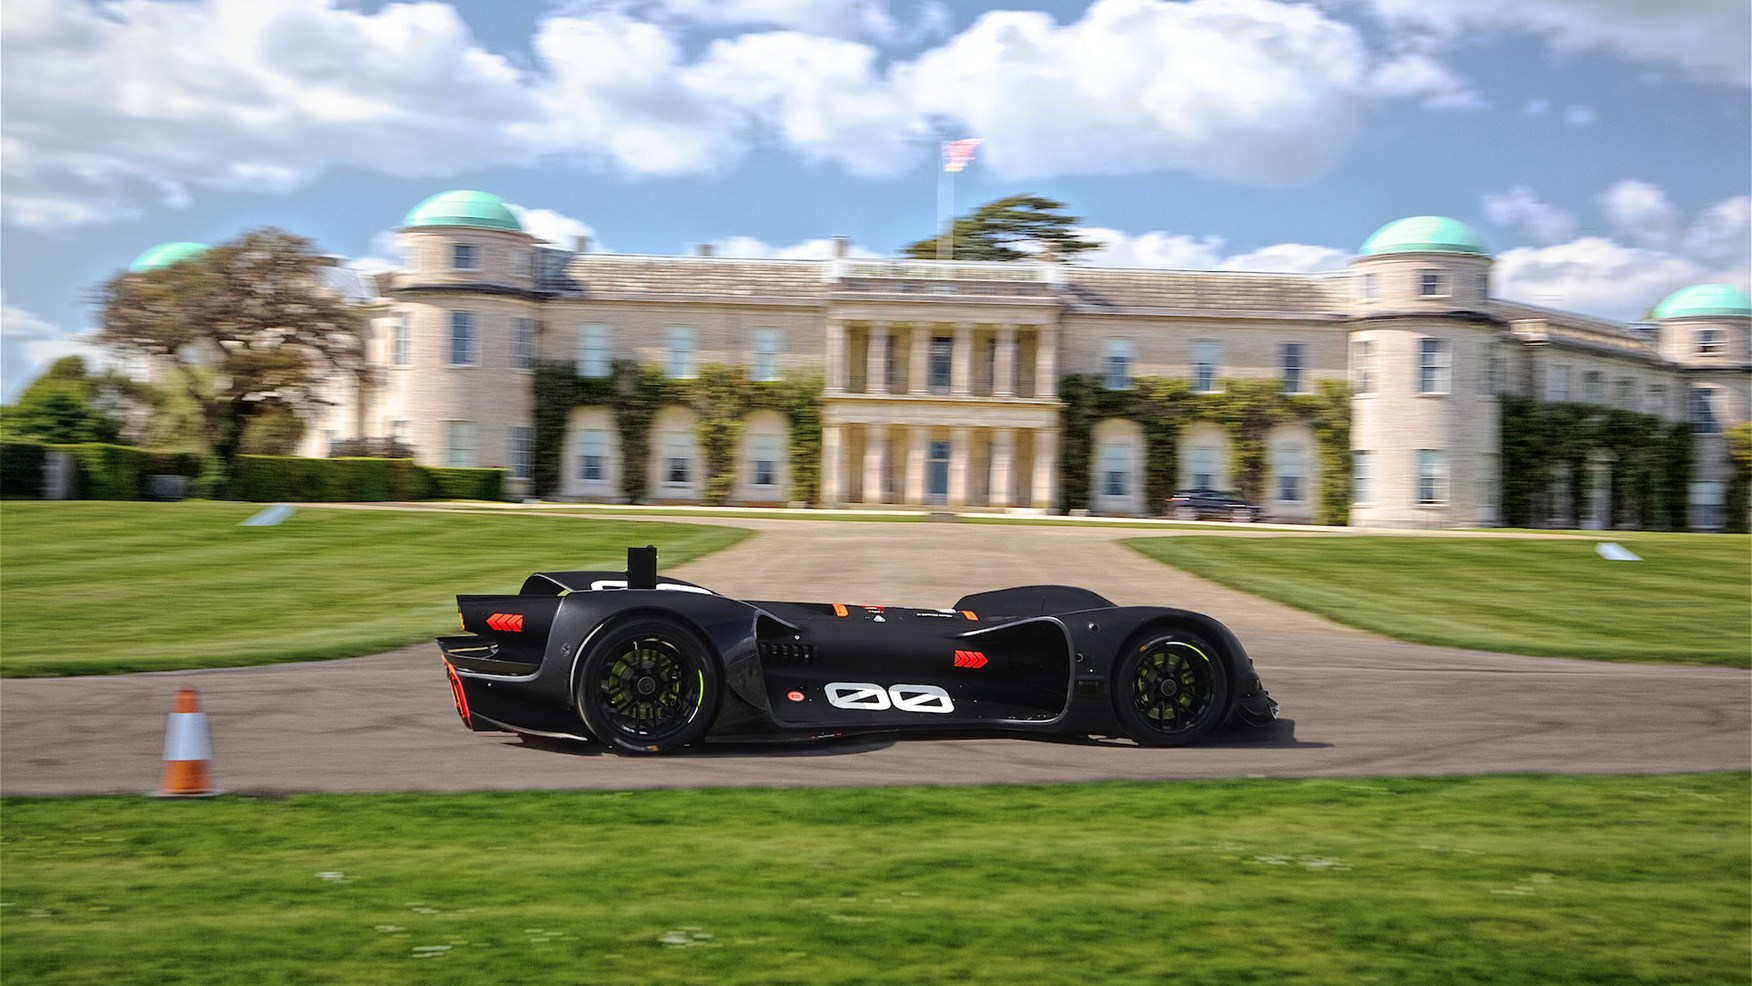 sports car in front of grand mansion house at Goodwood Festival of Speed